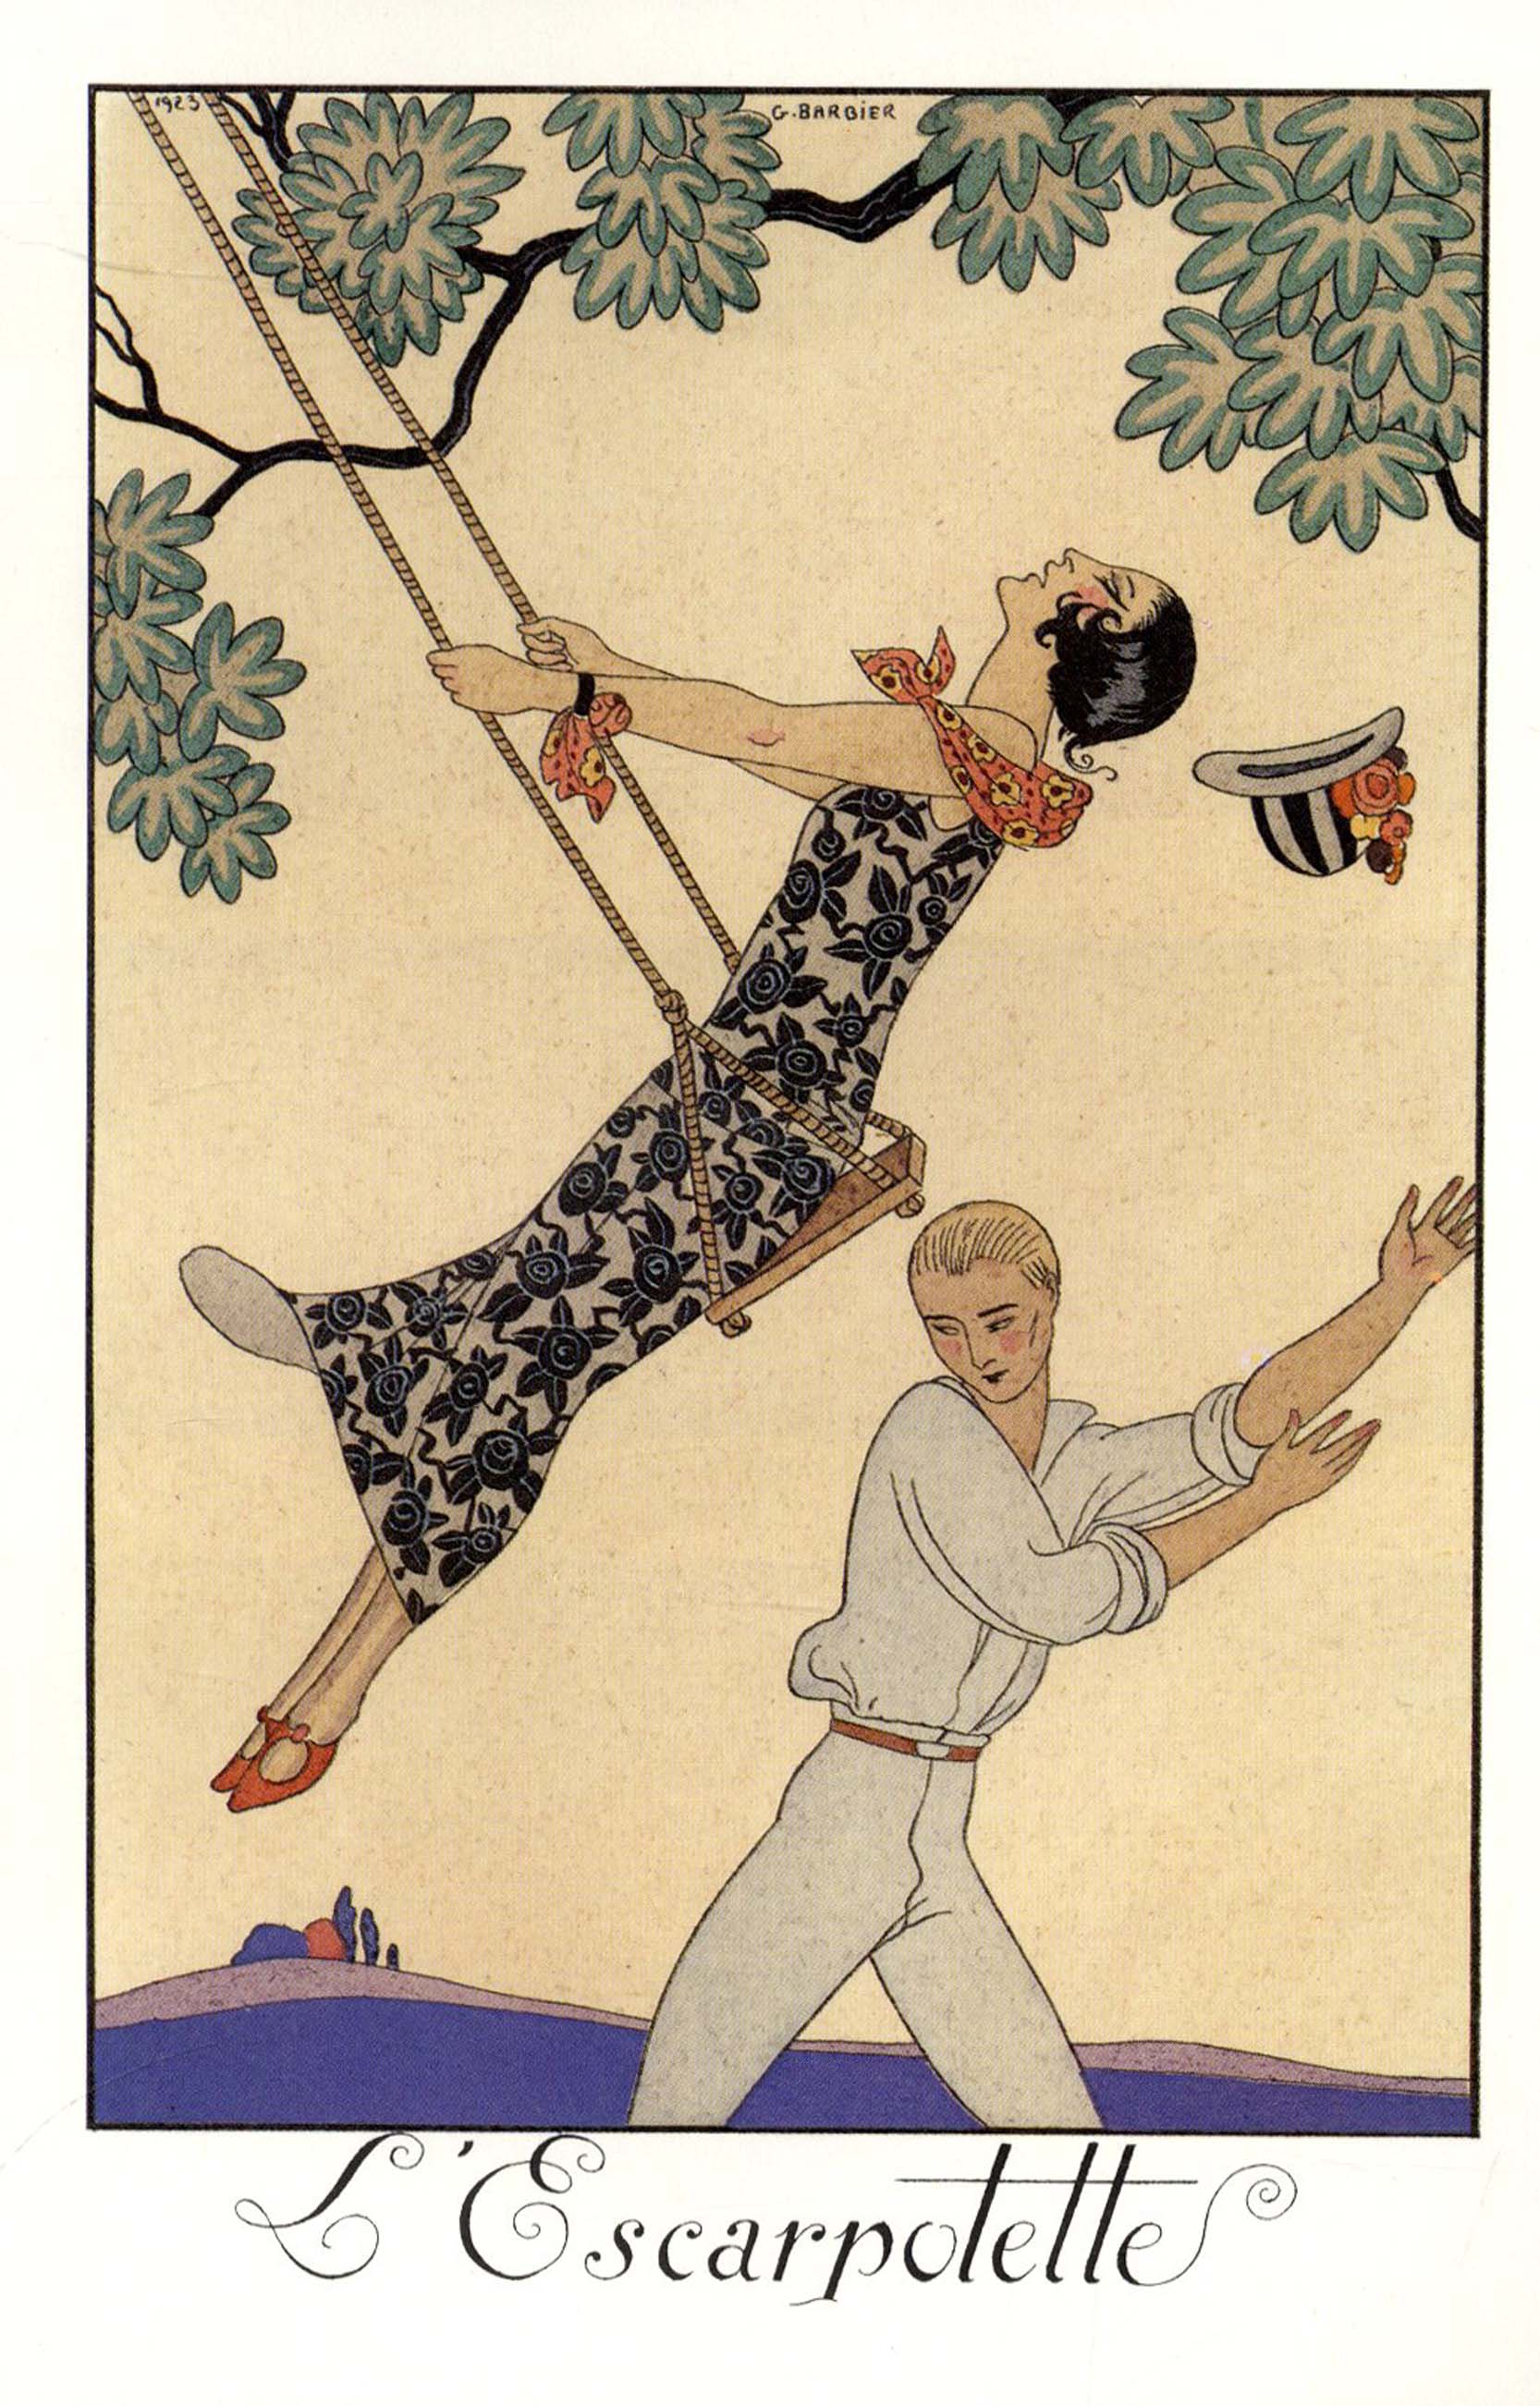 George Barbier Almanac Illustrations 1922 1926